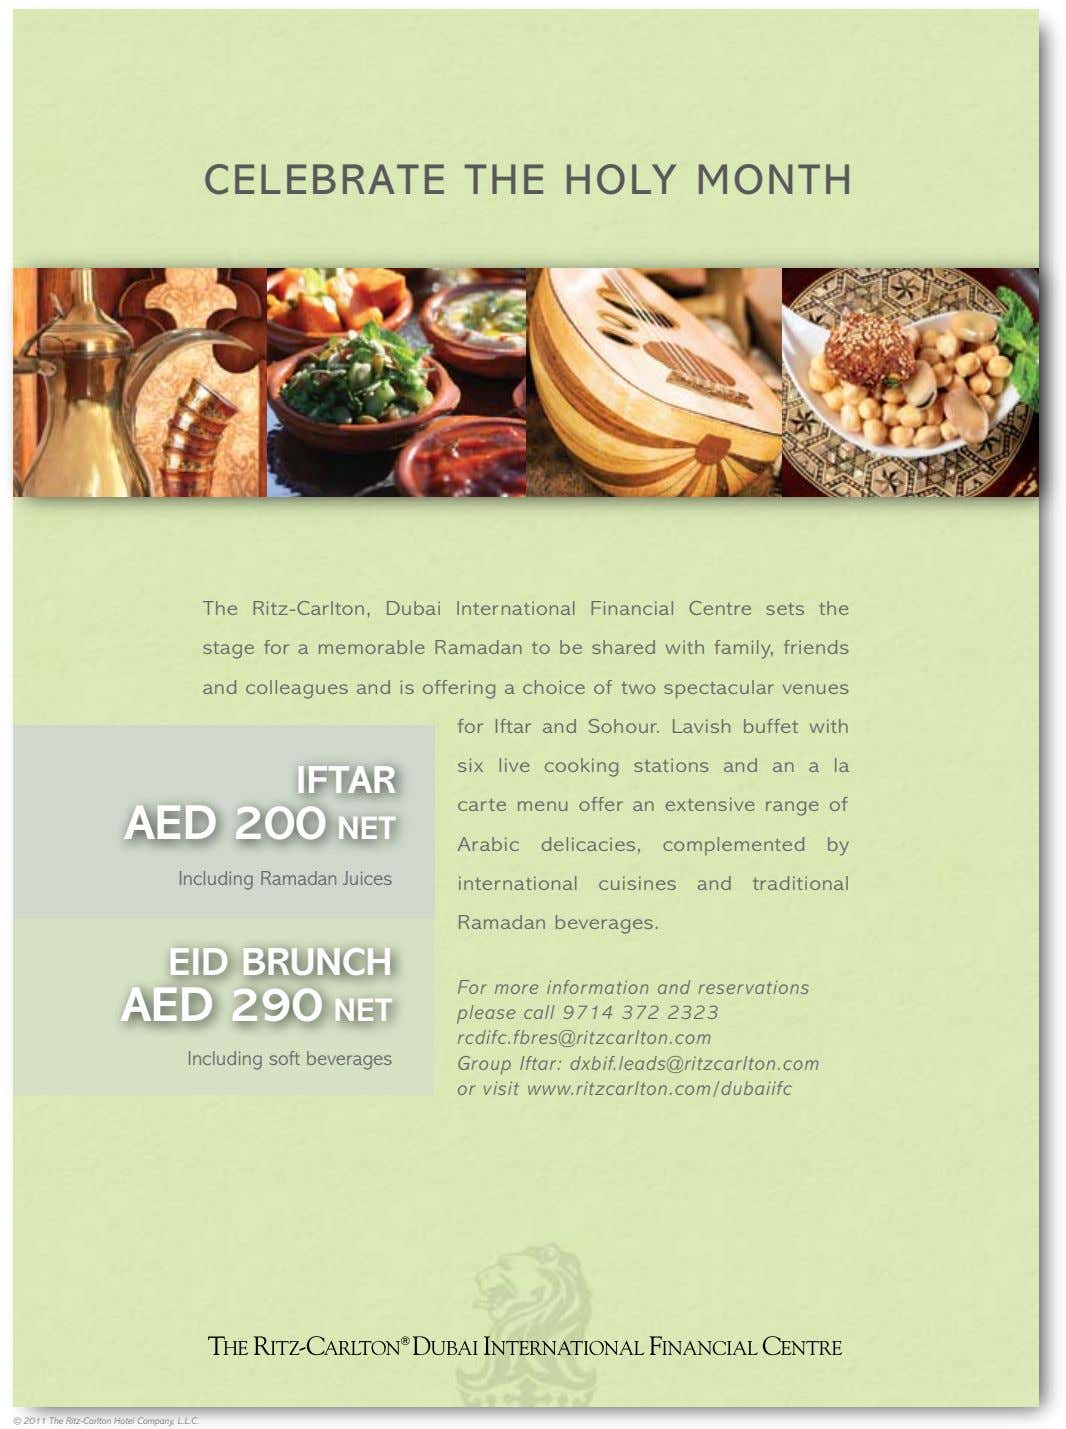 CELEBRATE THE HOLY MONTH The Ritz-Carlton, Dubai International Financial Centre sets the stage for a